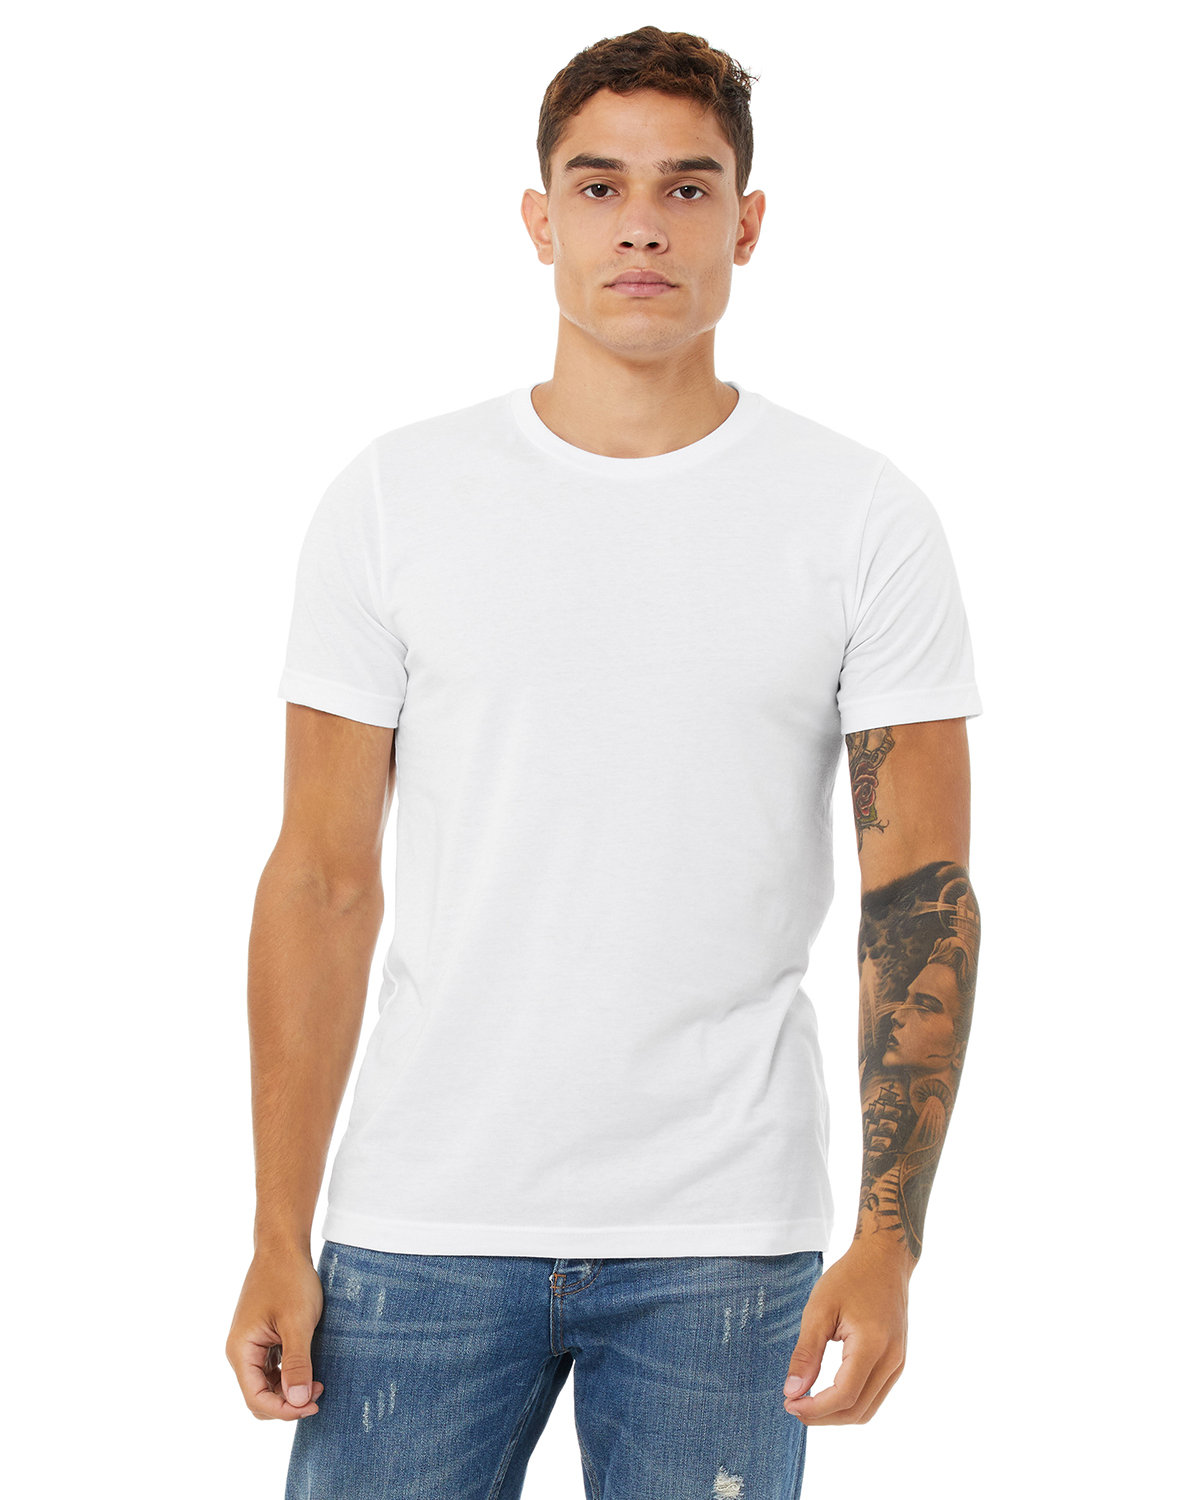 Bella + Canvas Unisex Heather CVC T-Shirt SOLID WHT BLEND